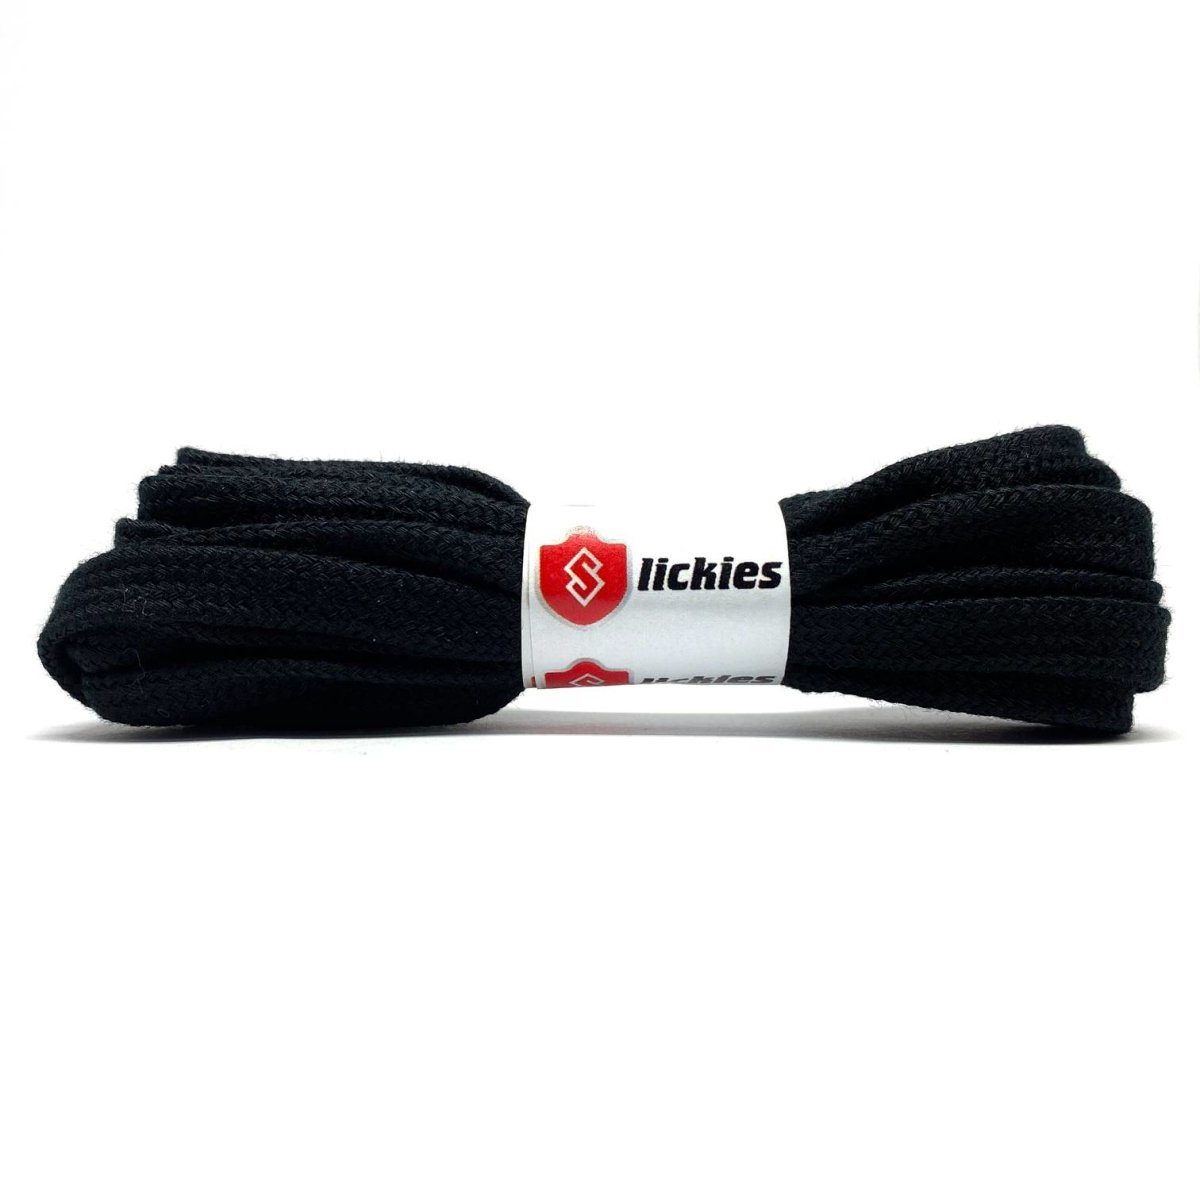 Flat Thin - BASICS Flat Cotton Laces - Black